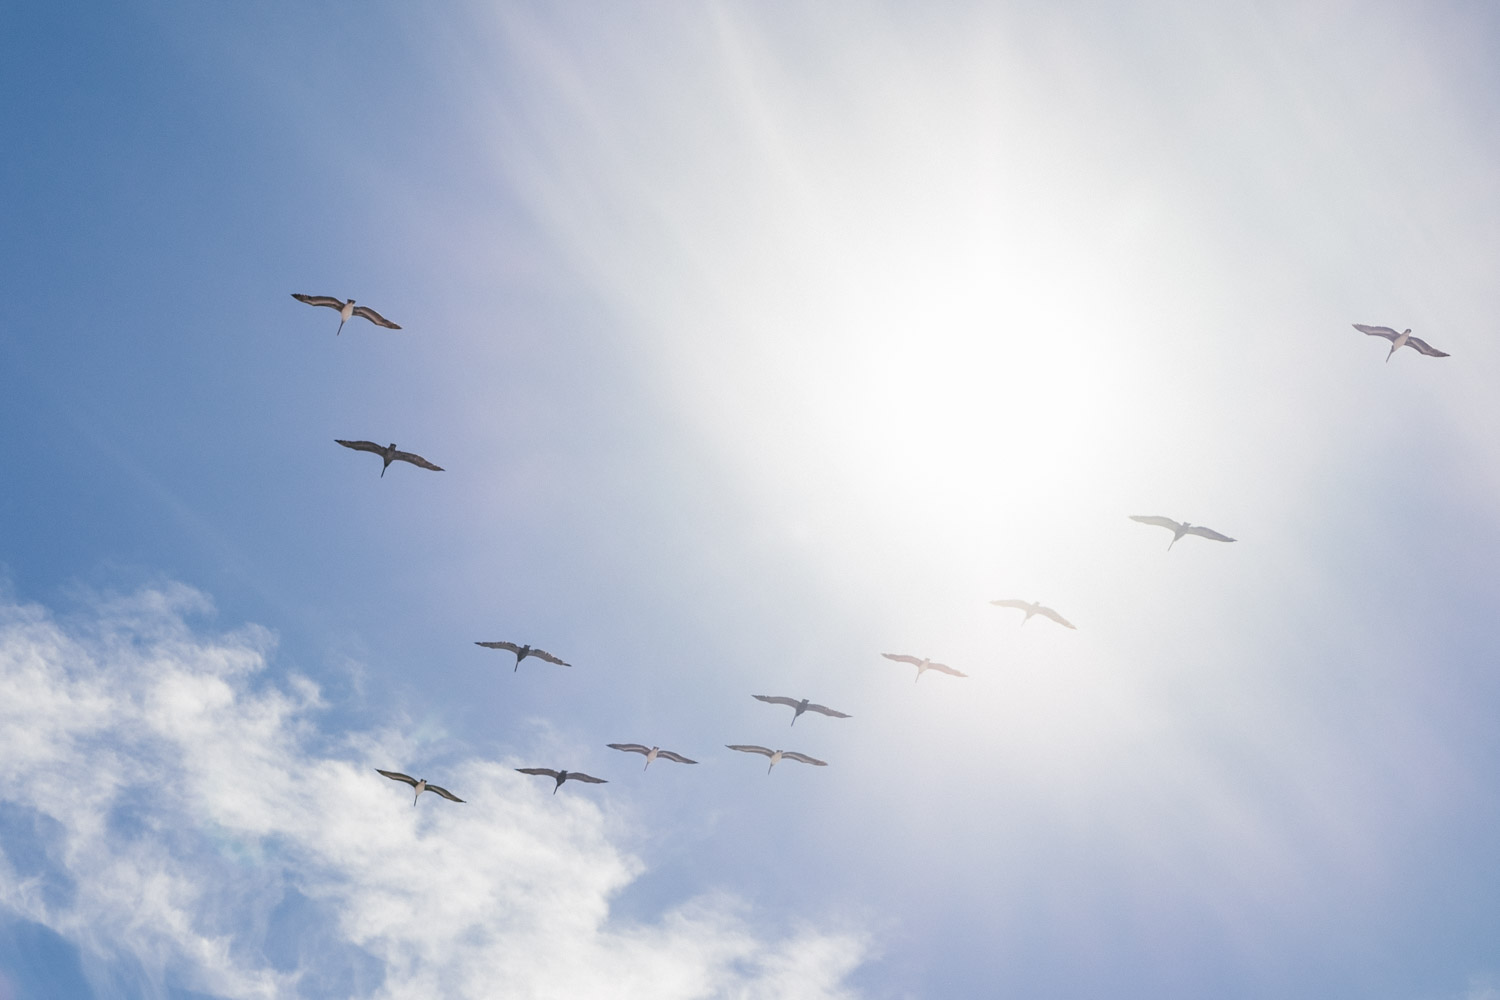 Birds in formation. Jalama Beach - Let's Photo Trip